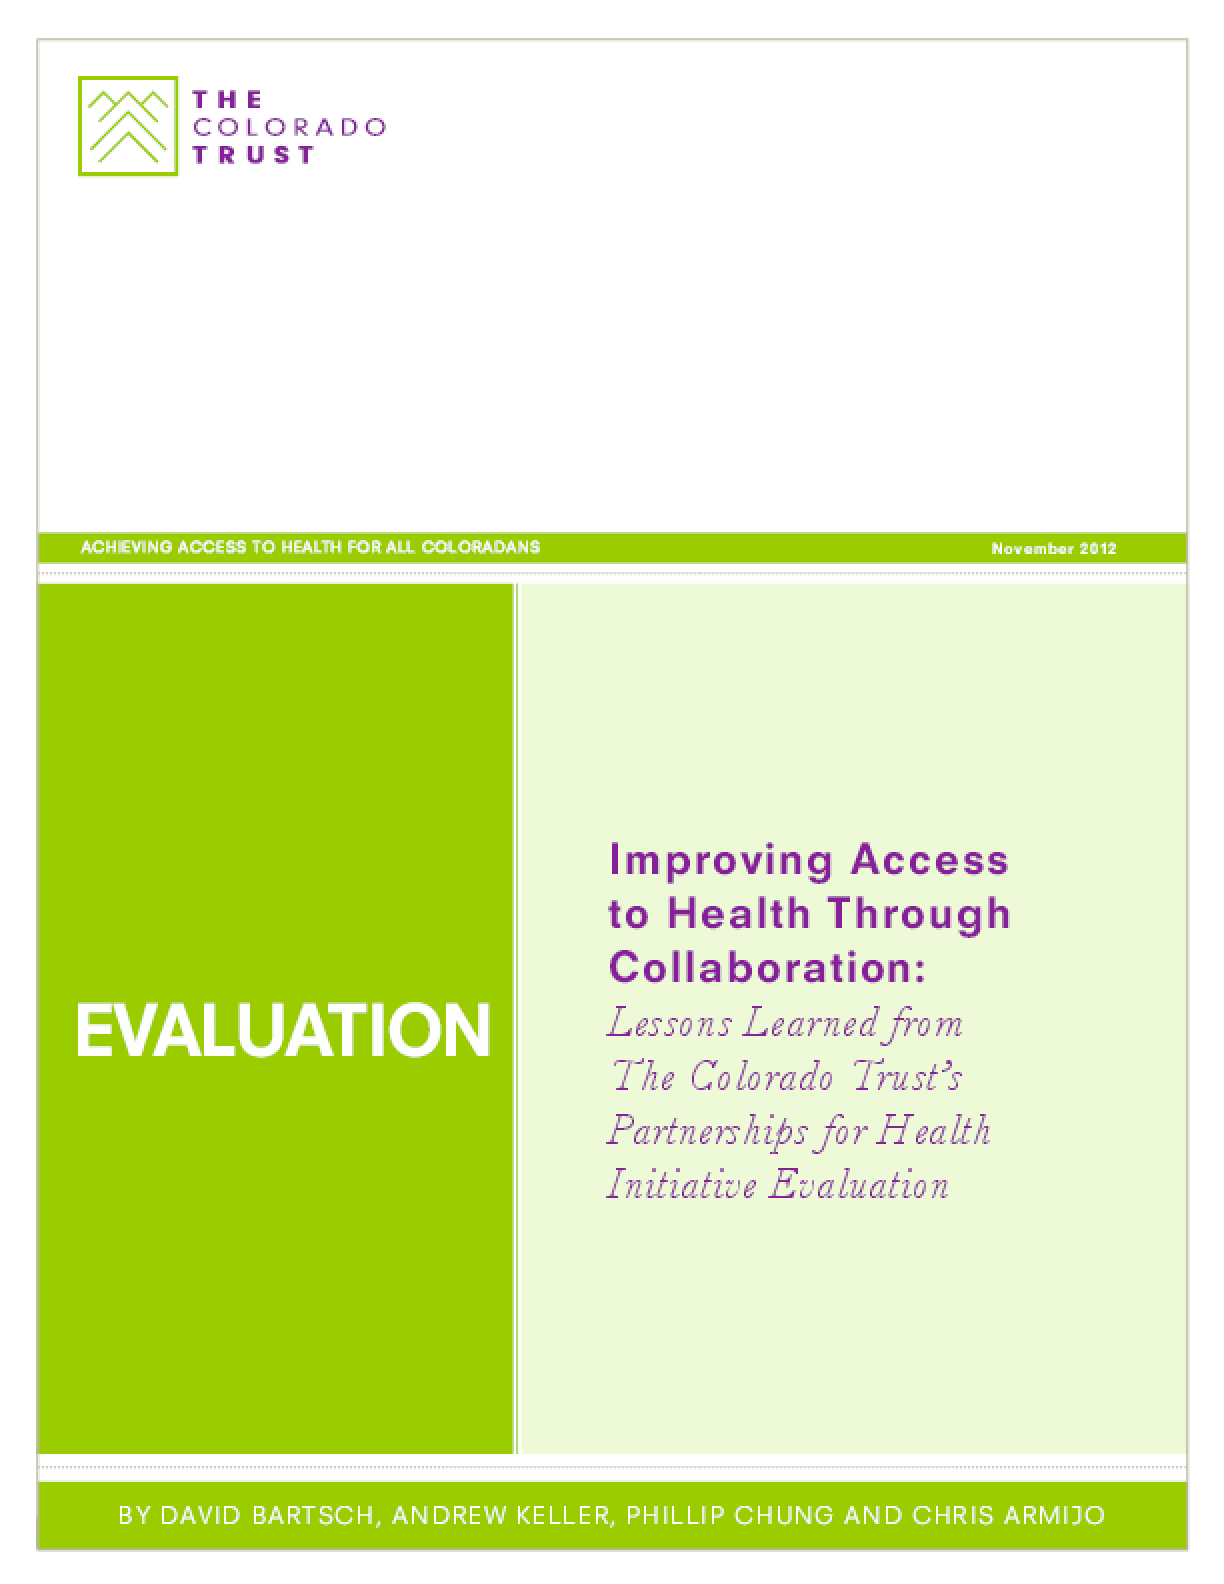 Improving Access to Health Through Collaboration: Lessons Learned from The Colorado Trust's Partnerships for Health Initiative Evaluation